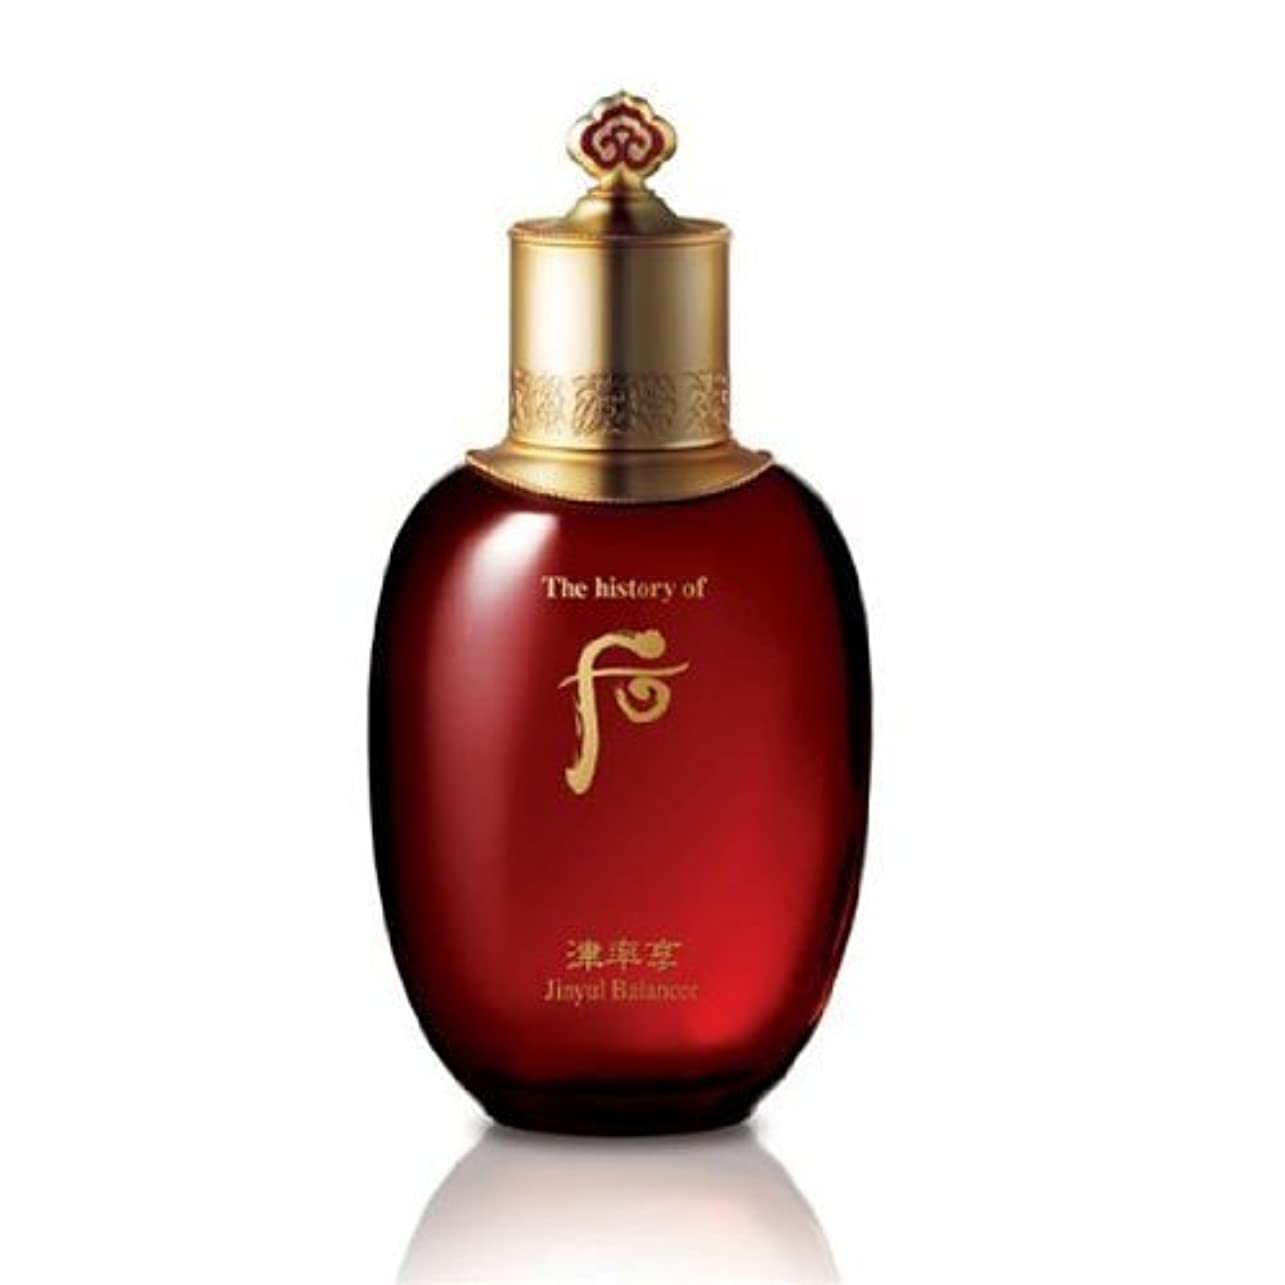 ディプロマ槍セットアップThe History of Whoo Jinyulhyang Jinyul Balancer 150ml